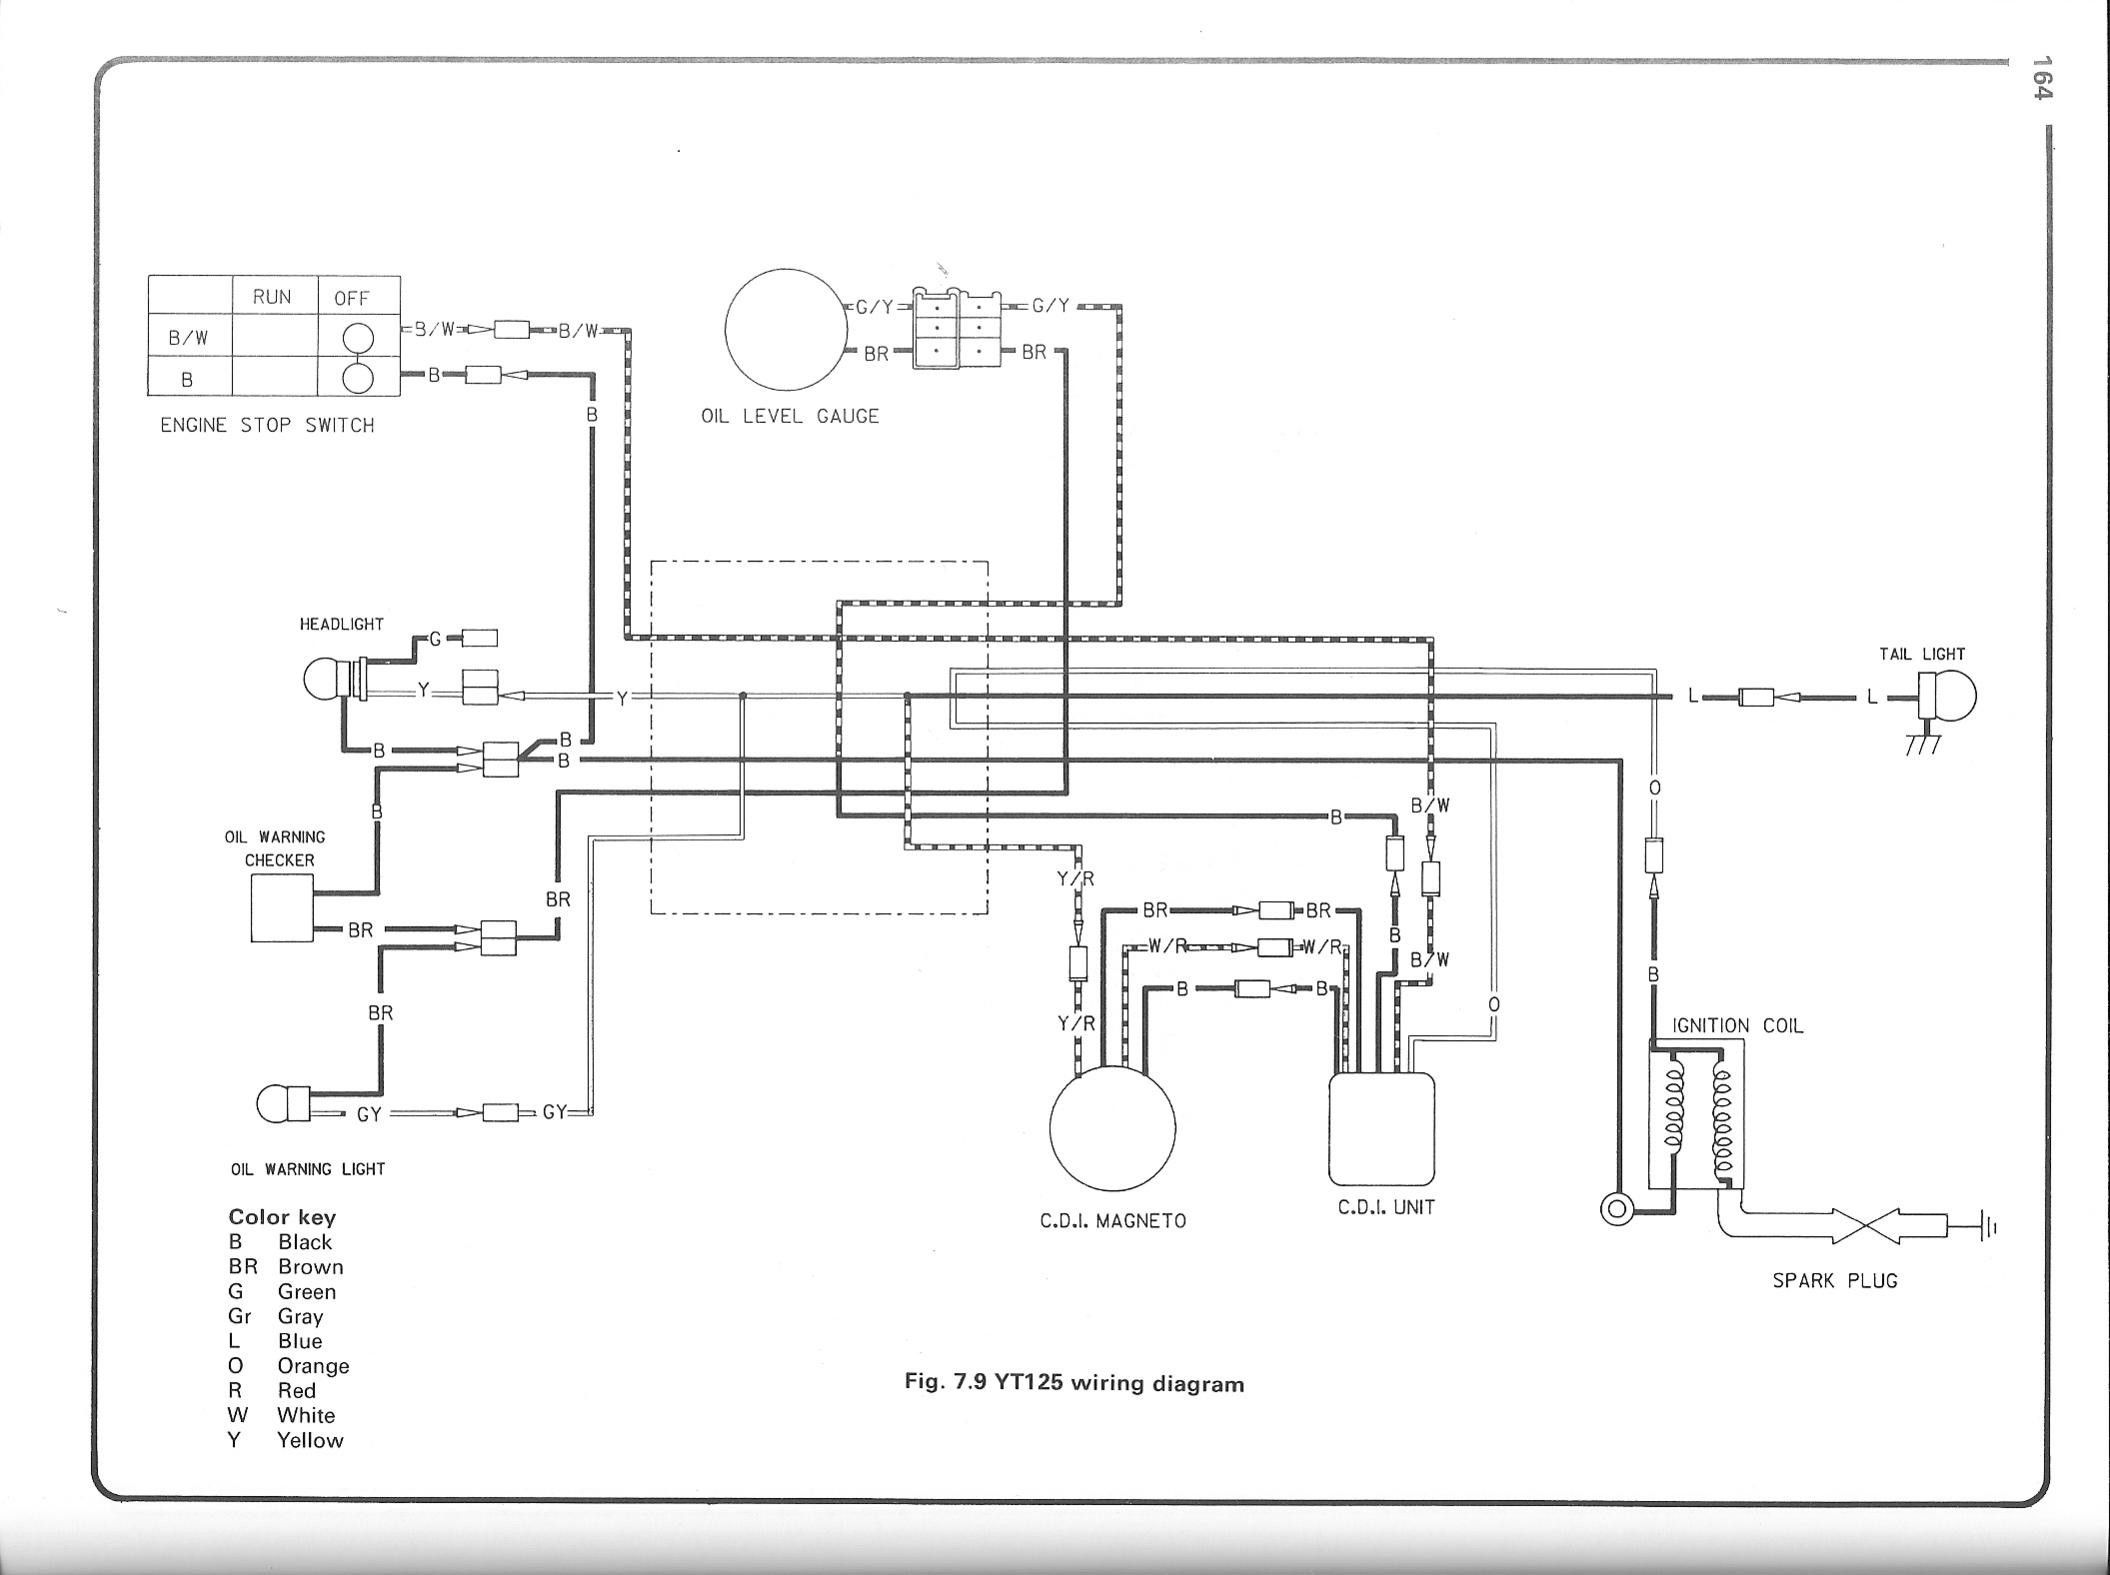 Unique Yamaha Moto 4 Wiring Diagram In 2020 Diagram Wire Yamaha